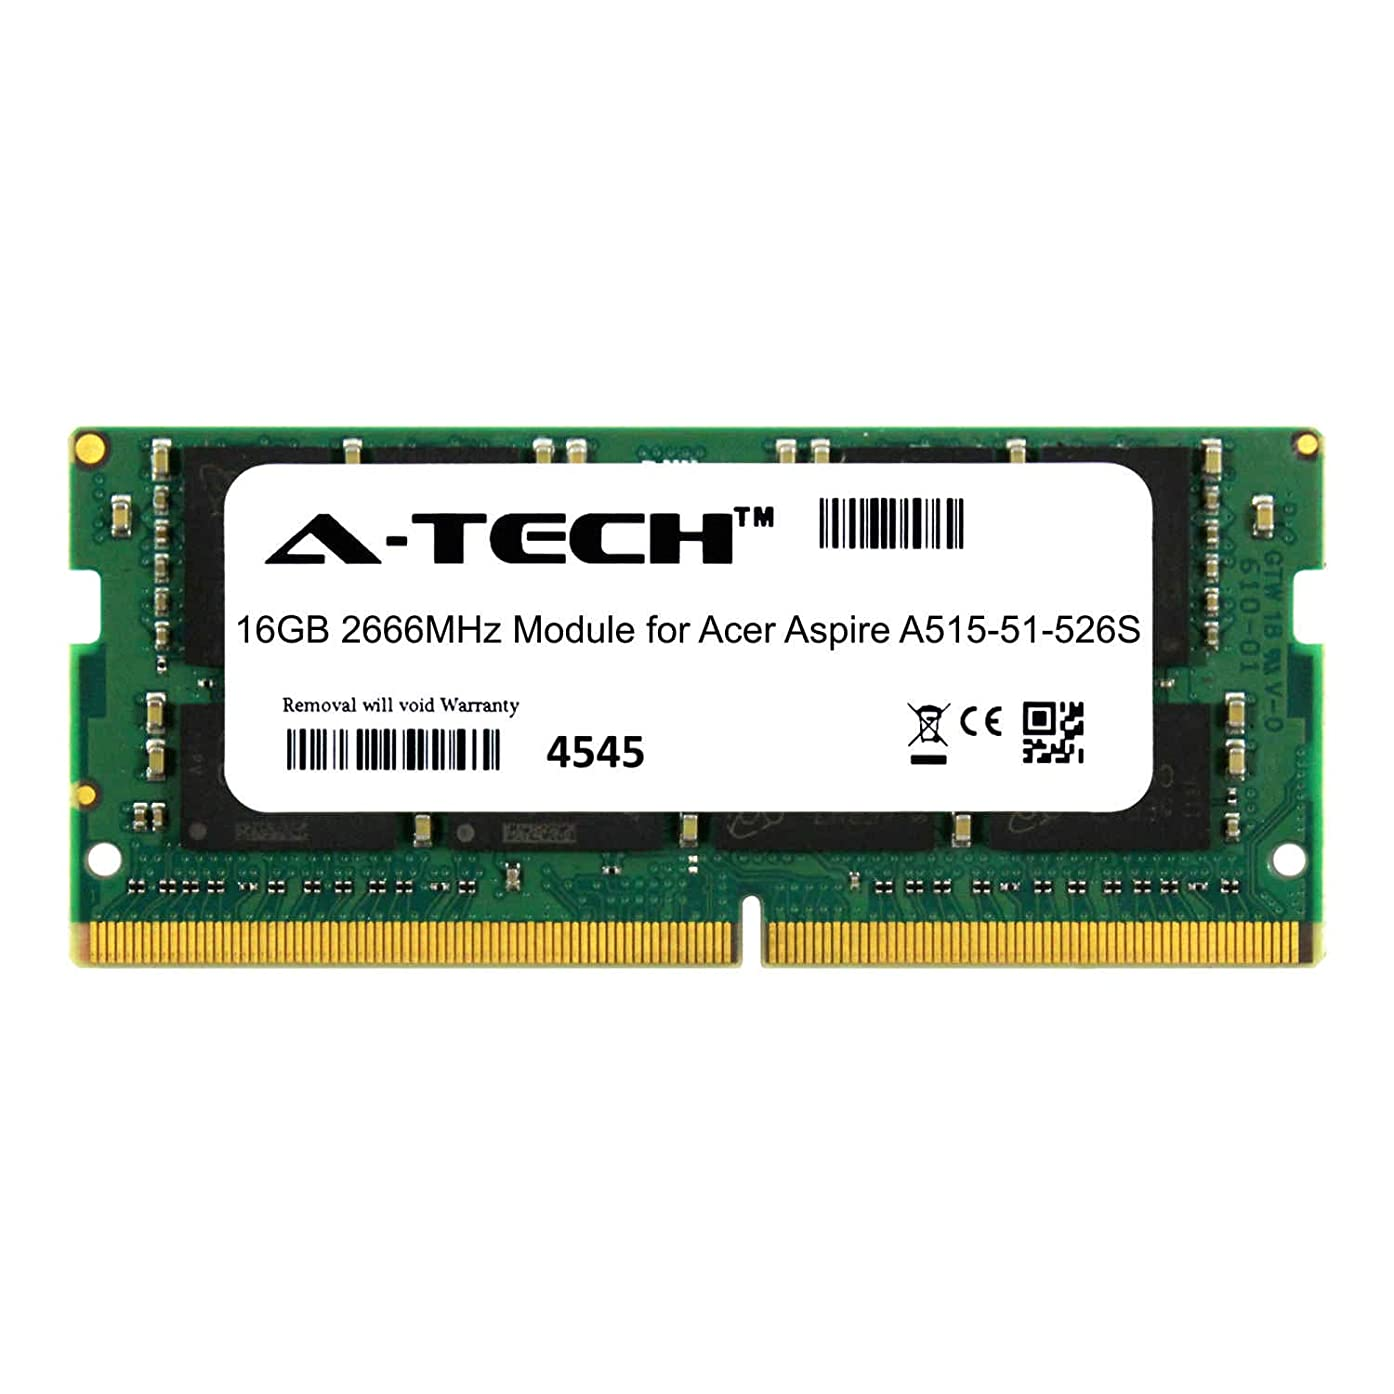 A-Tech 16GB Module for Acer Aspire A515-51-526S Laptop & Notebook Compatible DDR4 2666Mhz Memory Ram (ATMS267429A25832X1)